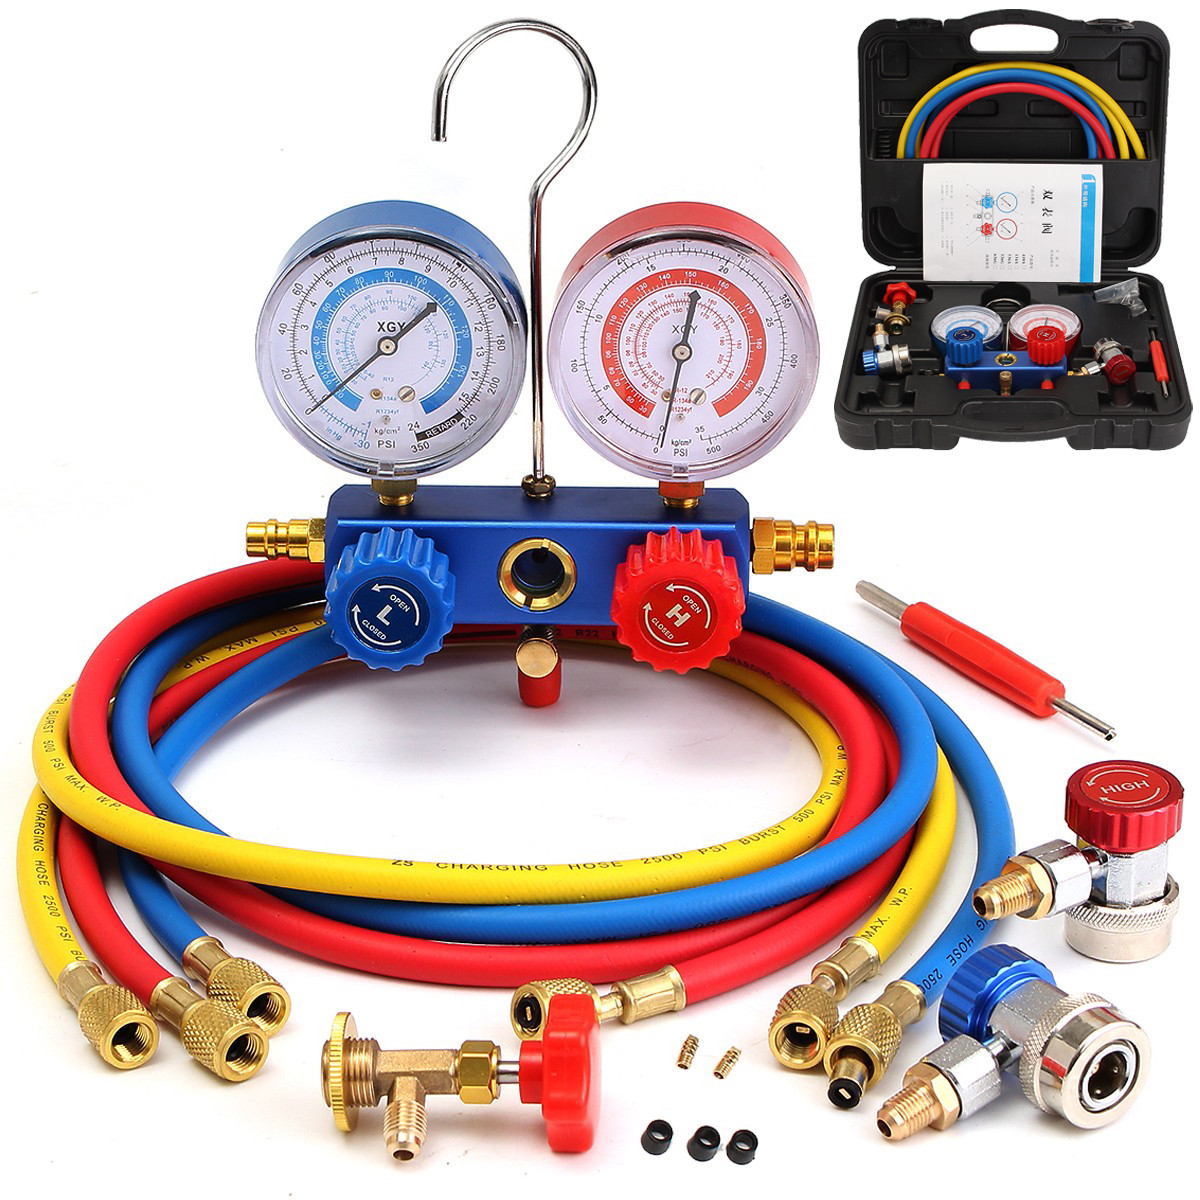 цена R134A HVAC A/C Refrigeration Kit Manifold Gauge Set R22 R12 R134A Auto Refrigerant H/L Car Air Conditioning Repair Tool Gauge